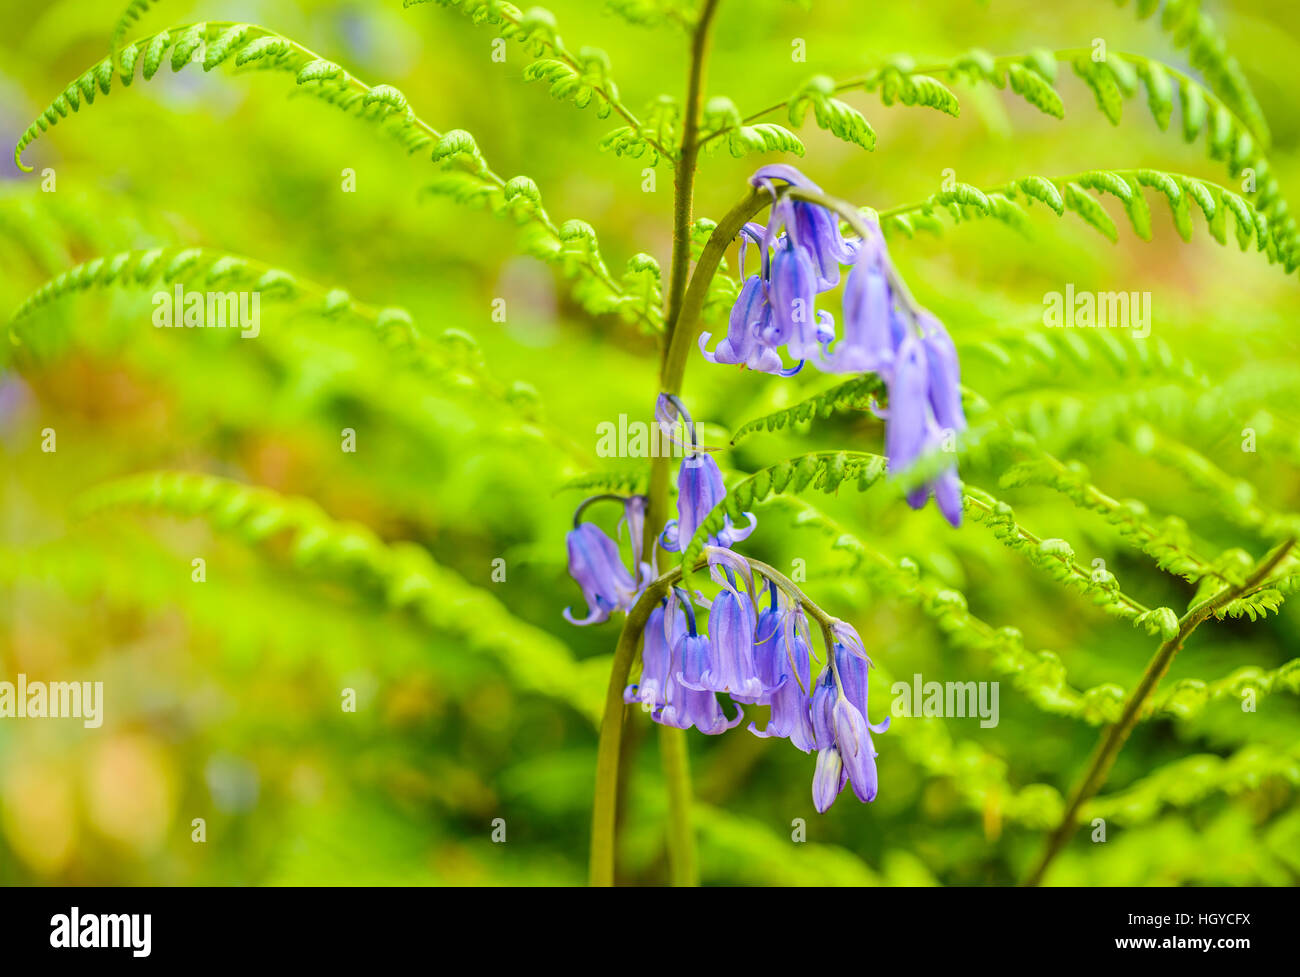 Bluebells Hyacinthoides non-scripta and bracken in woods near Scorton Lancashire UK - Stock Image